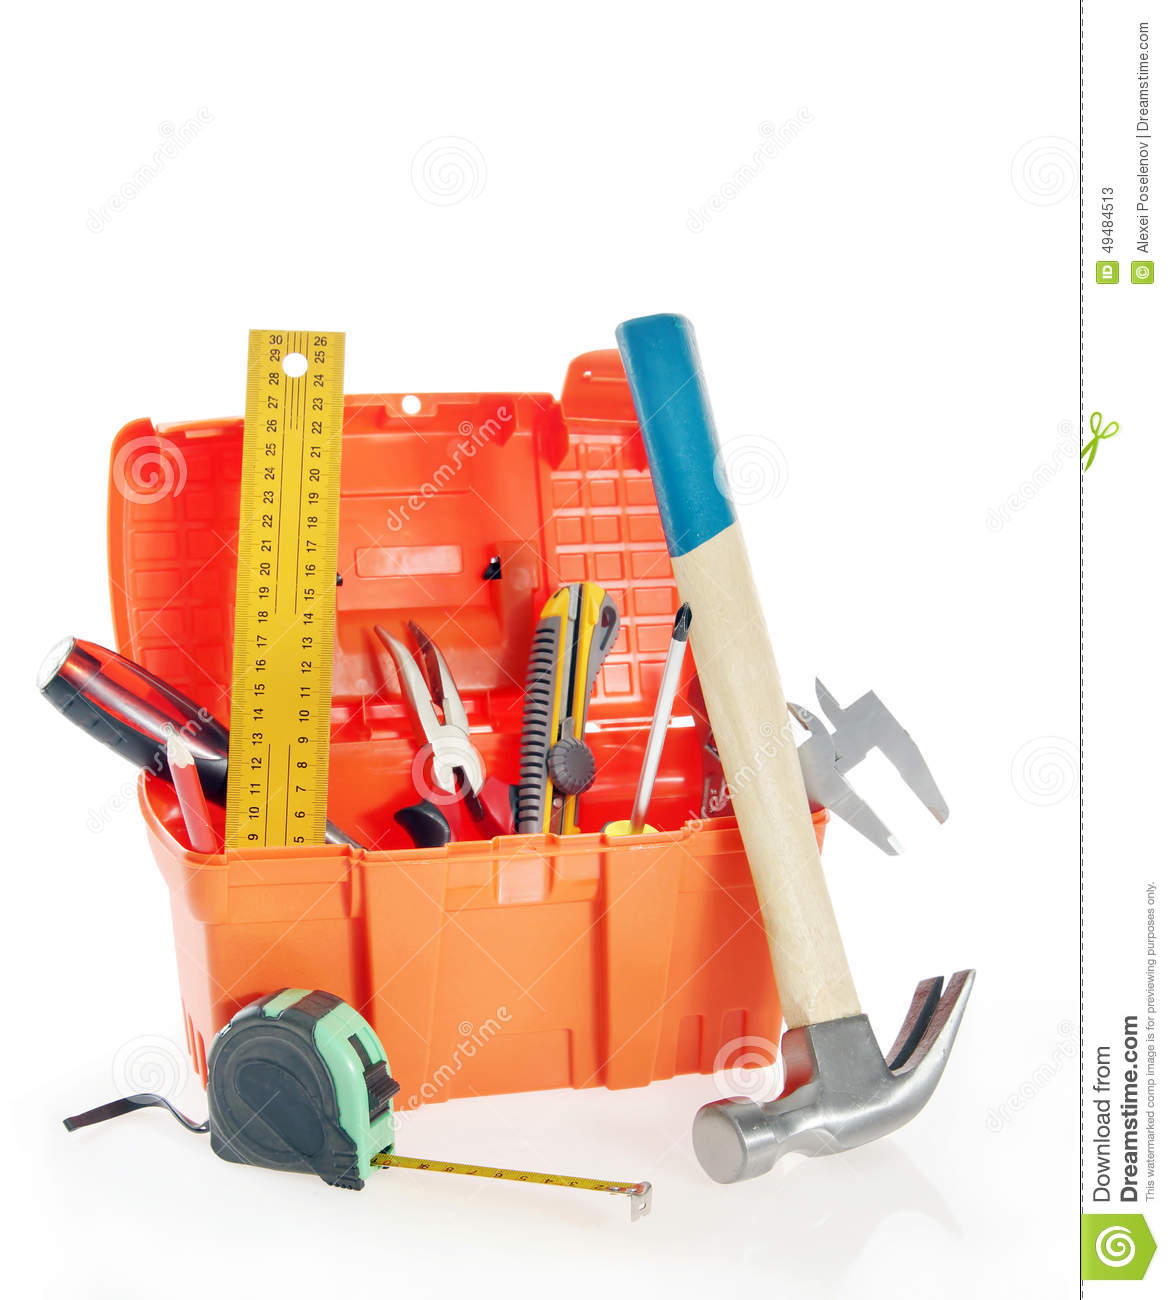 Plastic Toy Tools : Set of plastic toy tools for children in a line on